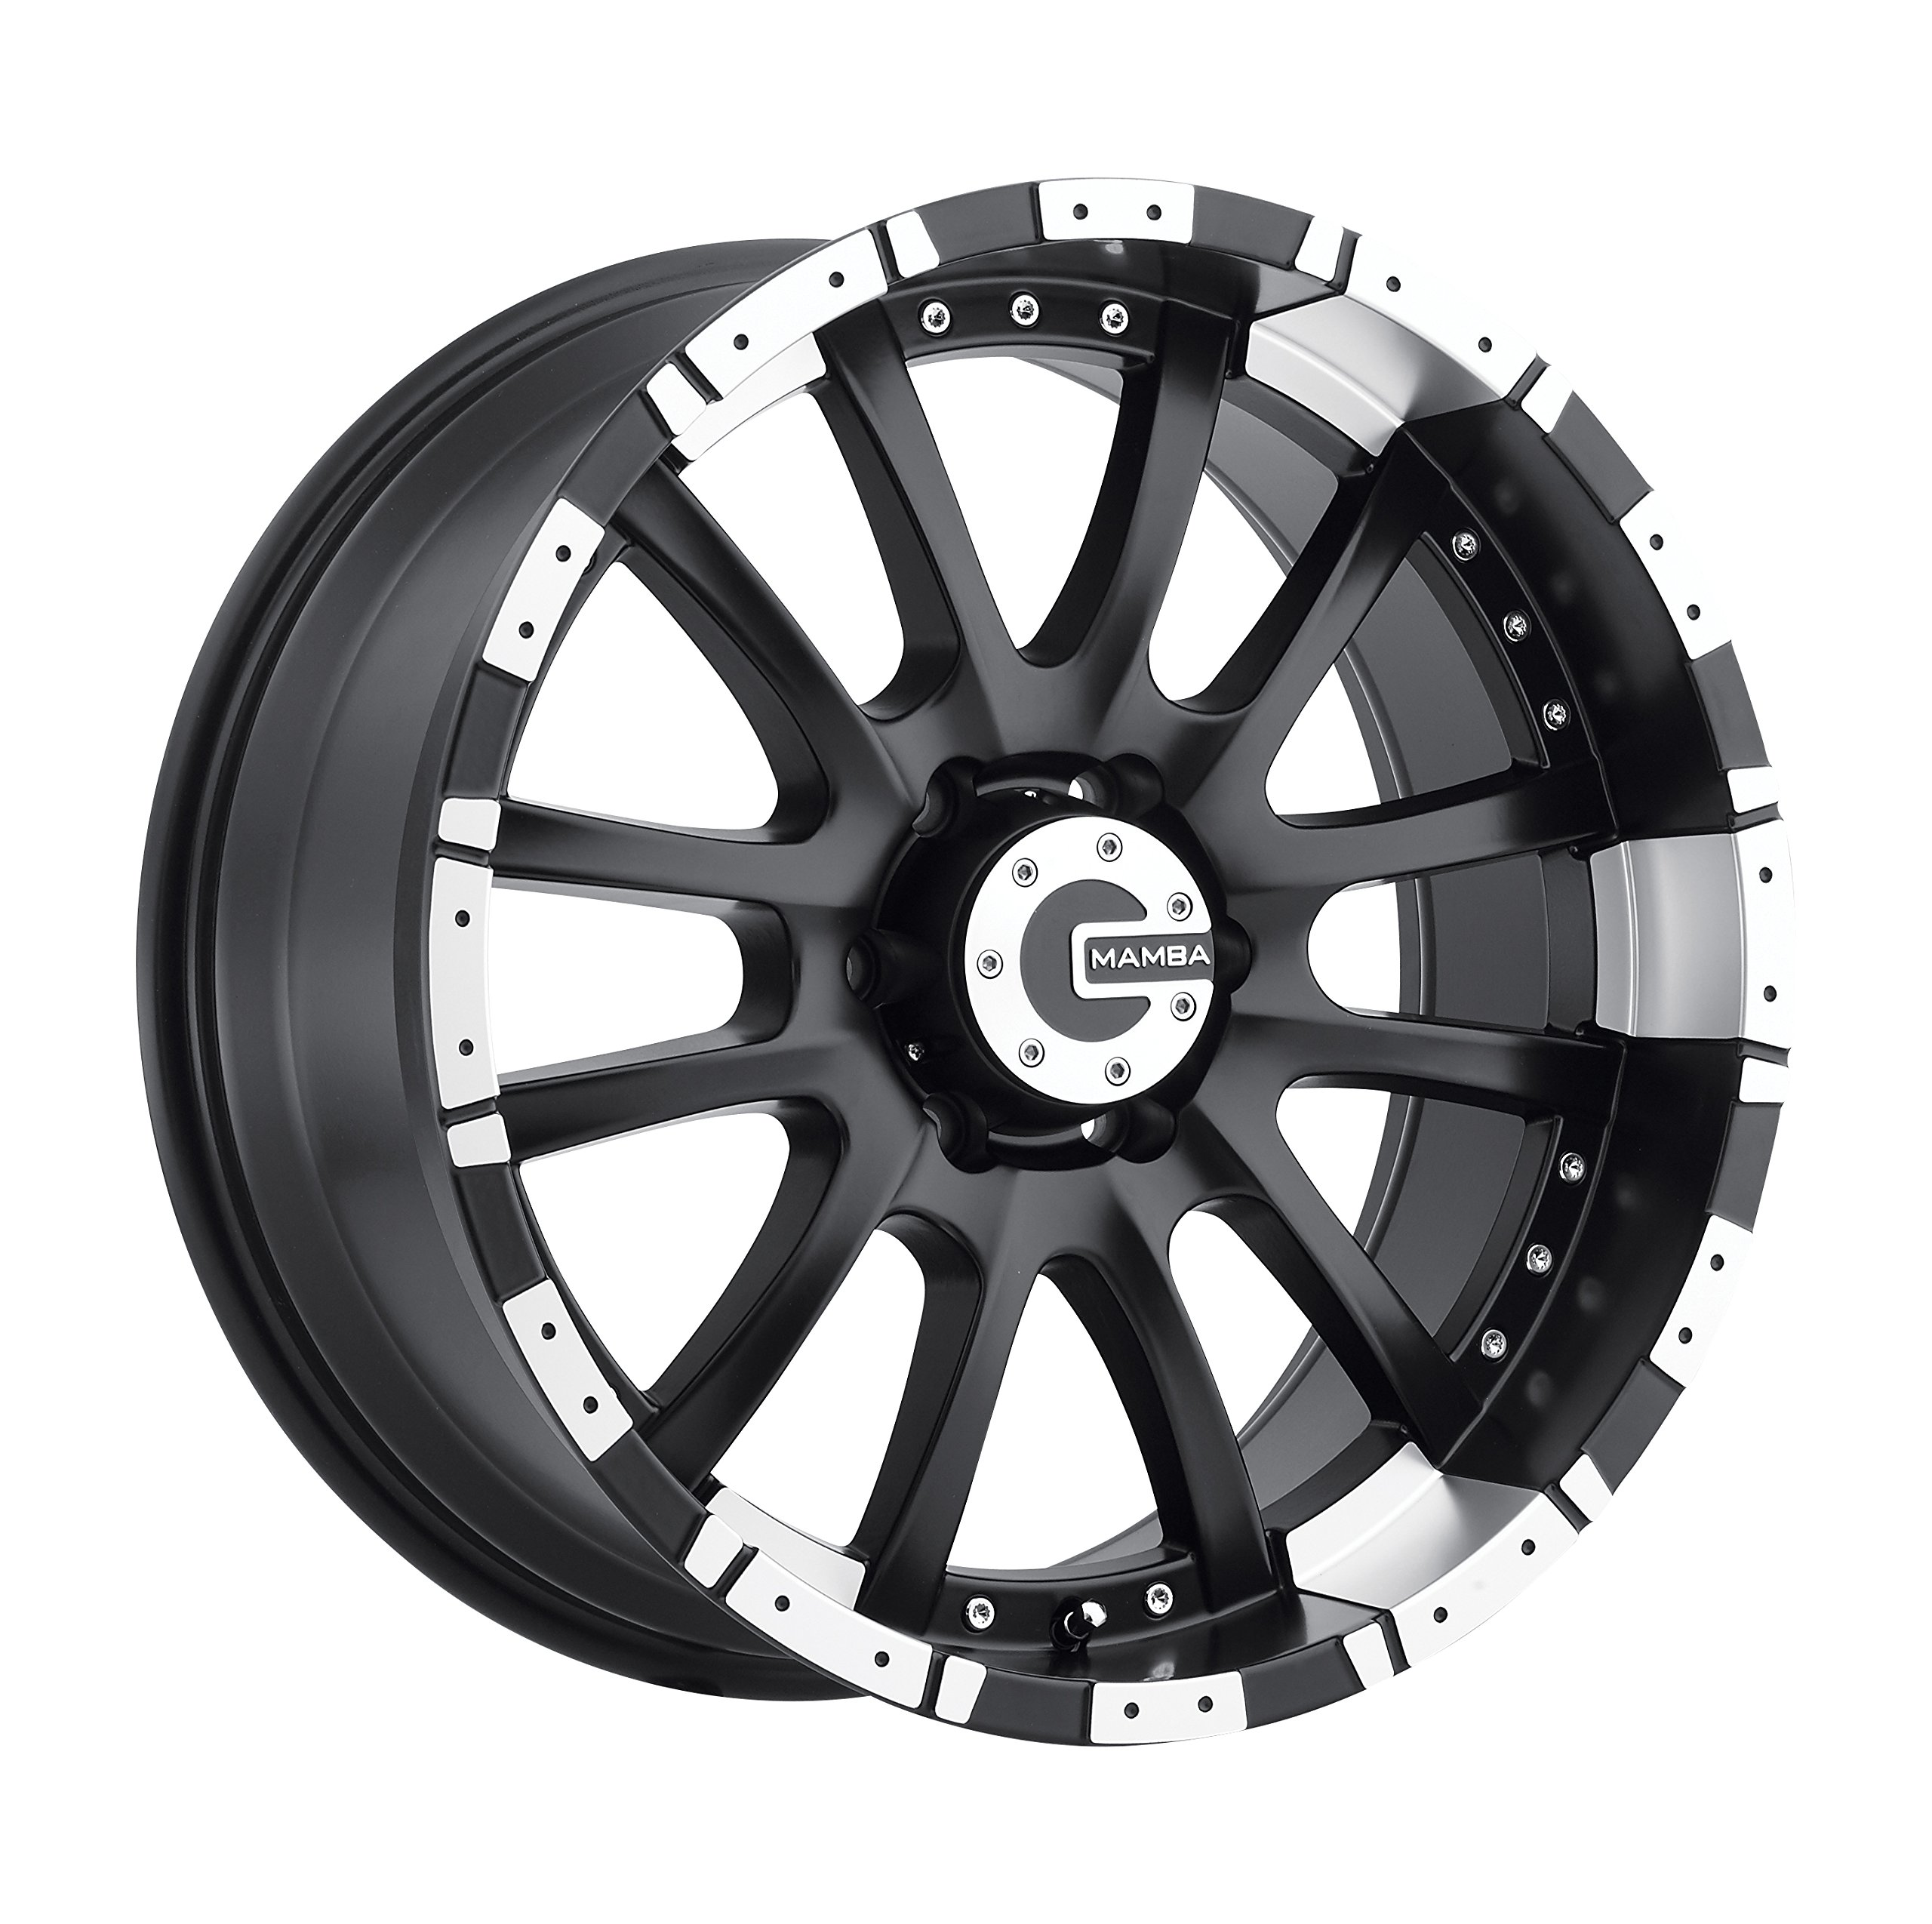 Mamba-M12-Matte-Black-Wheel-with-Machined-Lip-20x96x135mm-12mm-offset